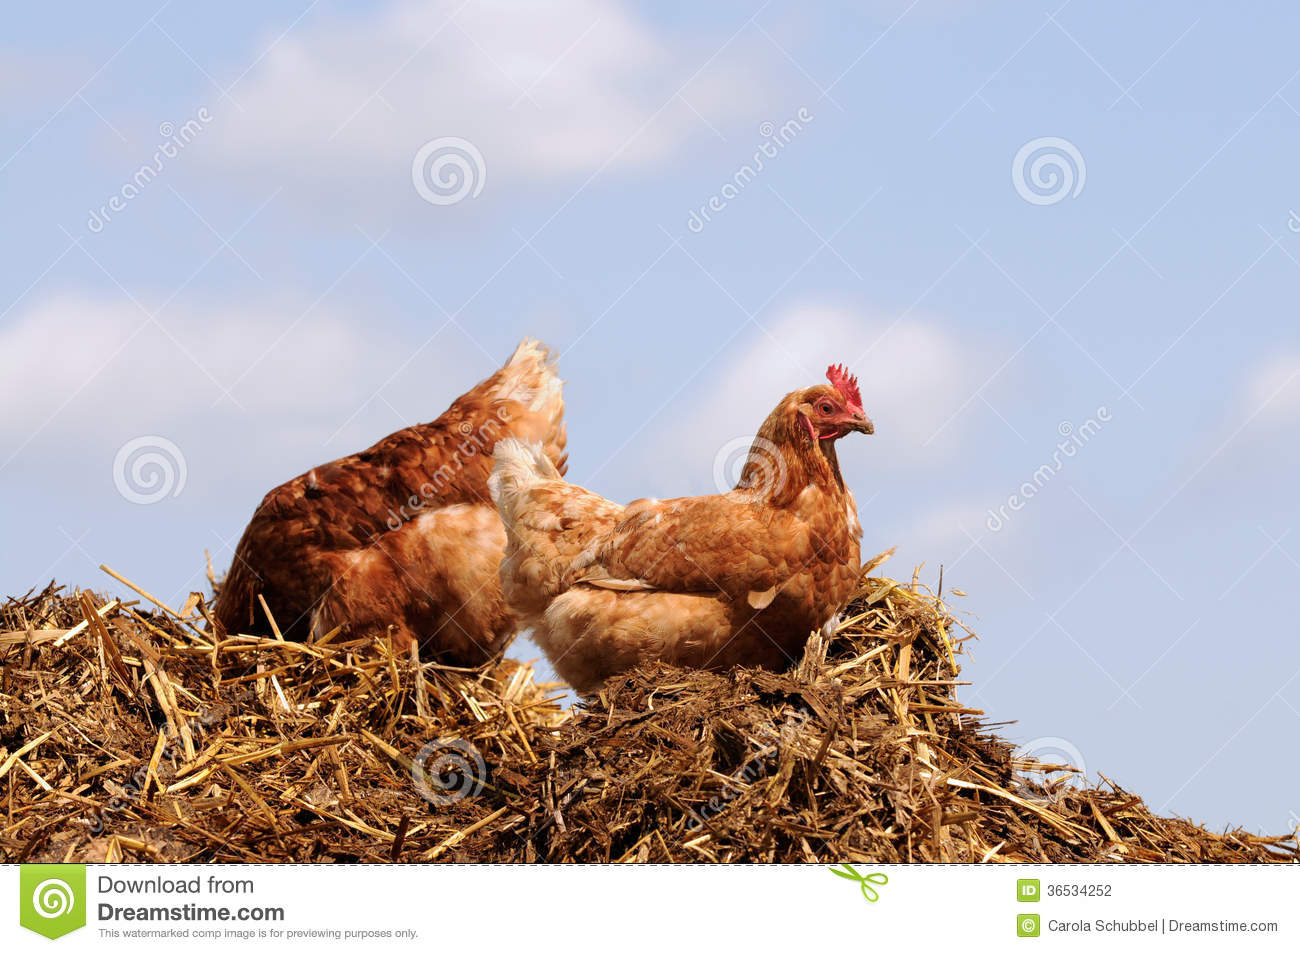 FEASIBILITY STUDY OF BROILER CHICKEN (POULTRY BIRDS) ON CHIBOY FARMS ABAKALIKI | A BUSINESS PLAN